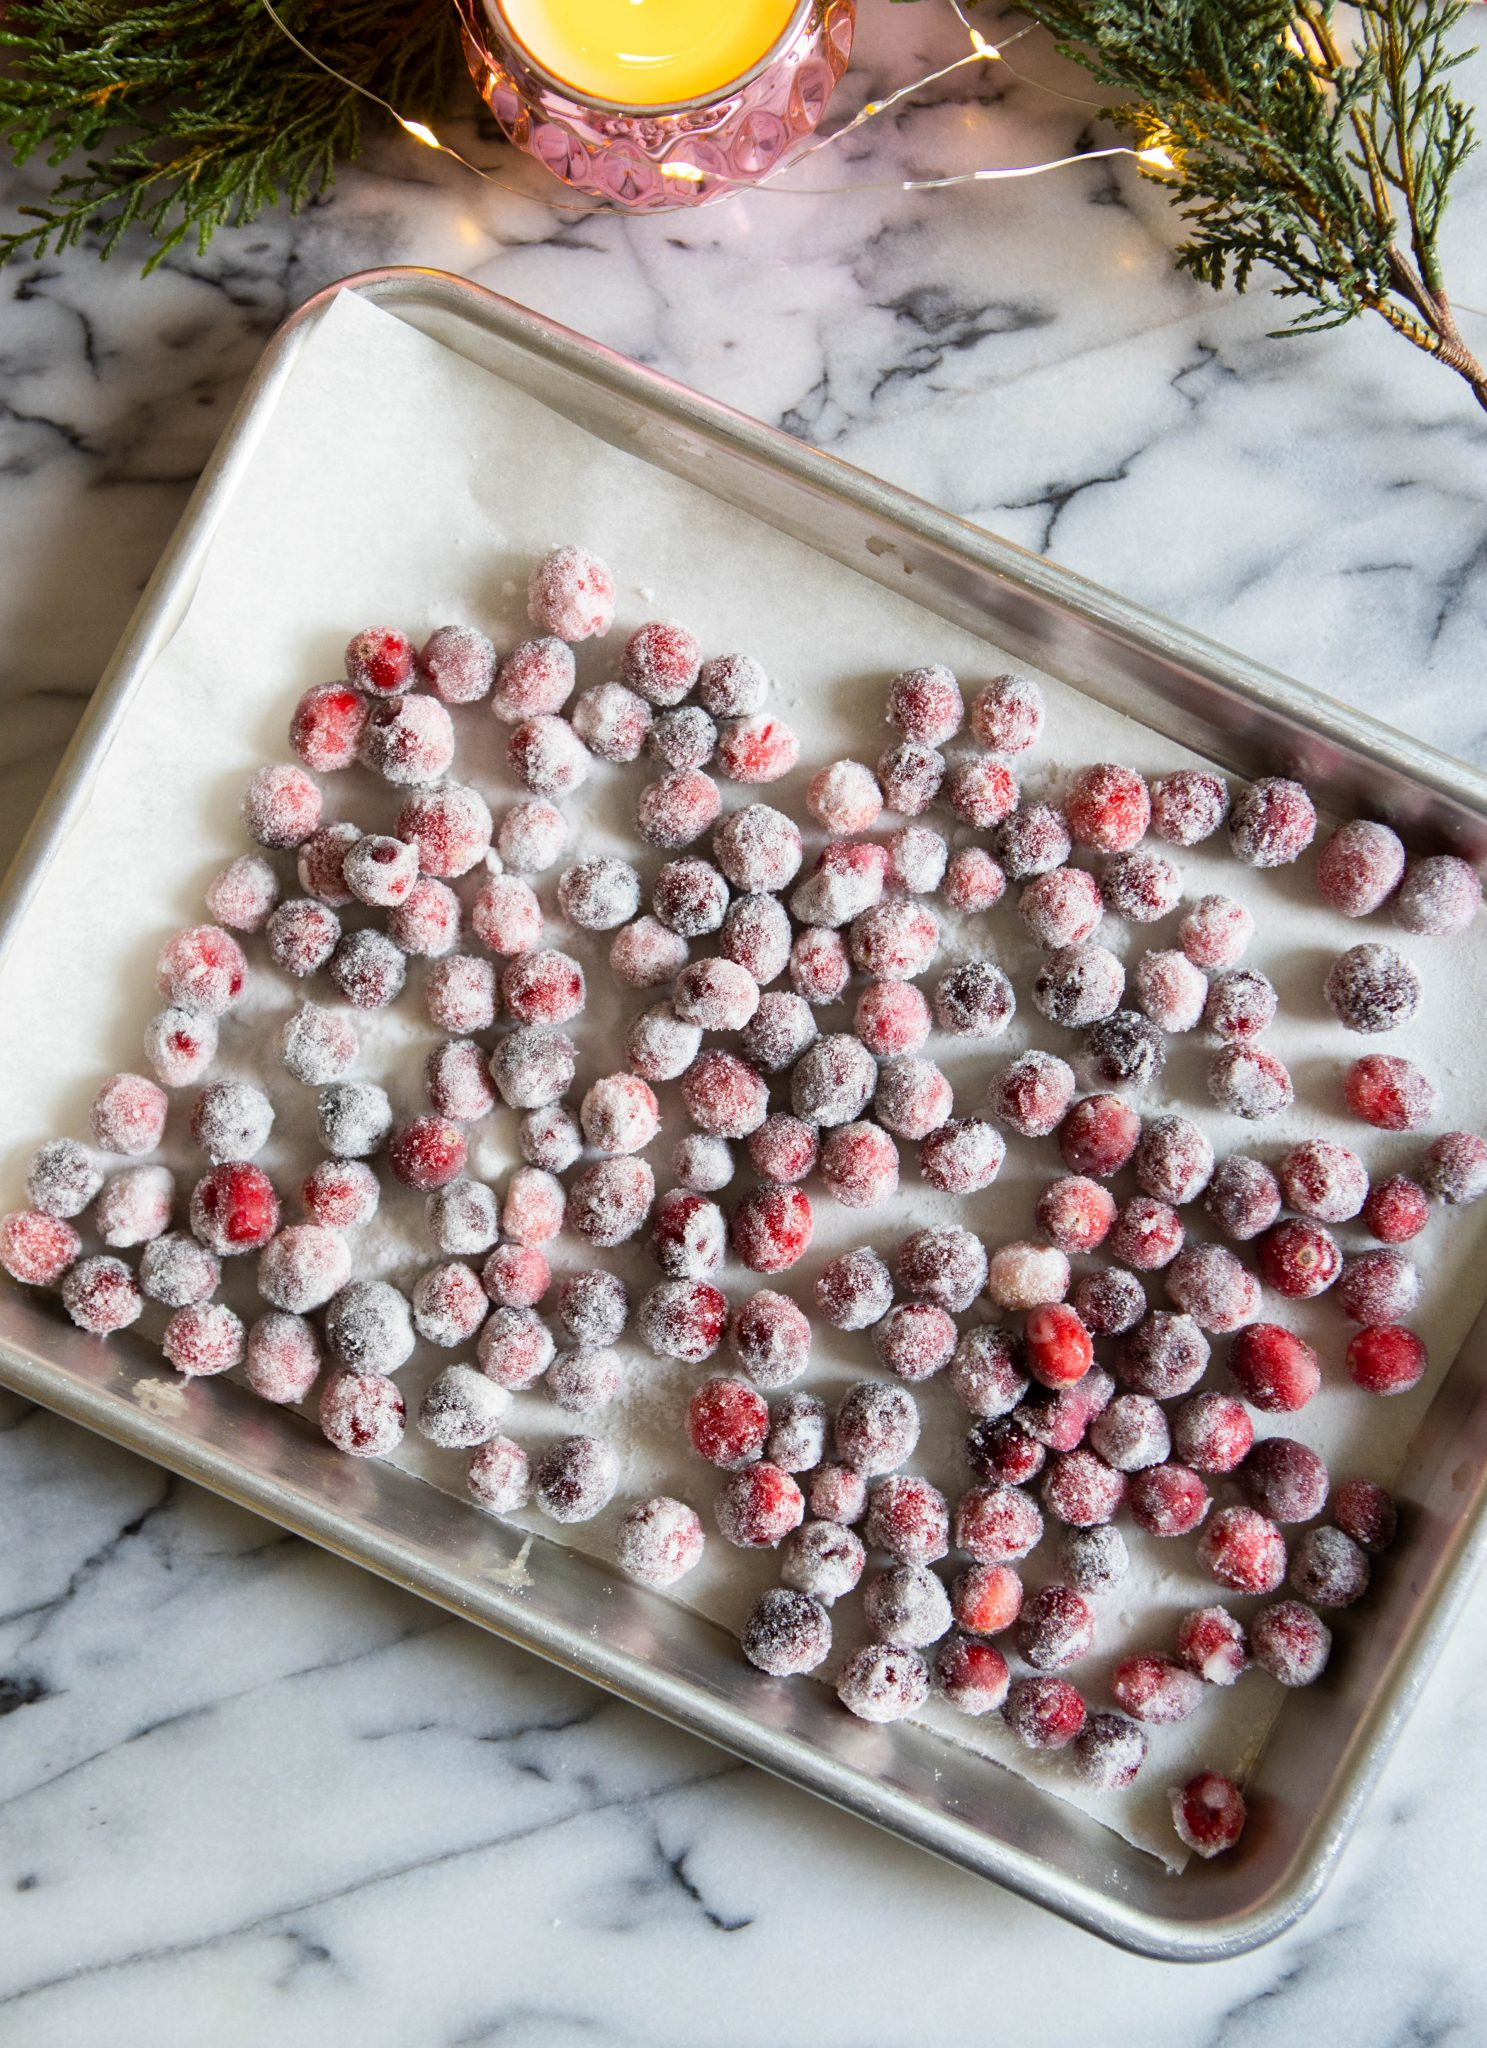 sugared cranberries drying on a baking sheet